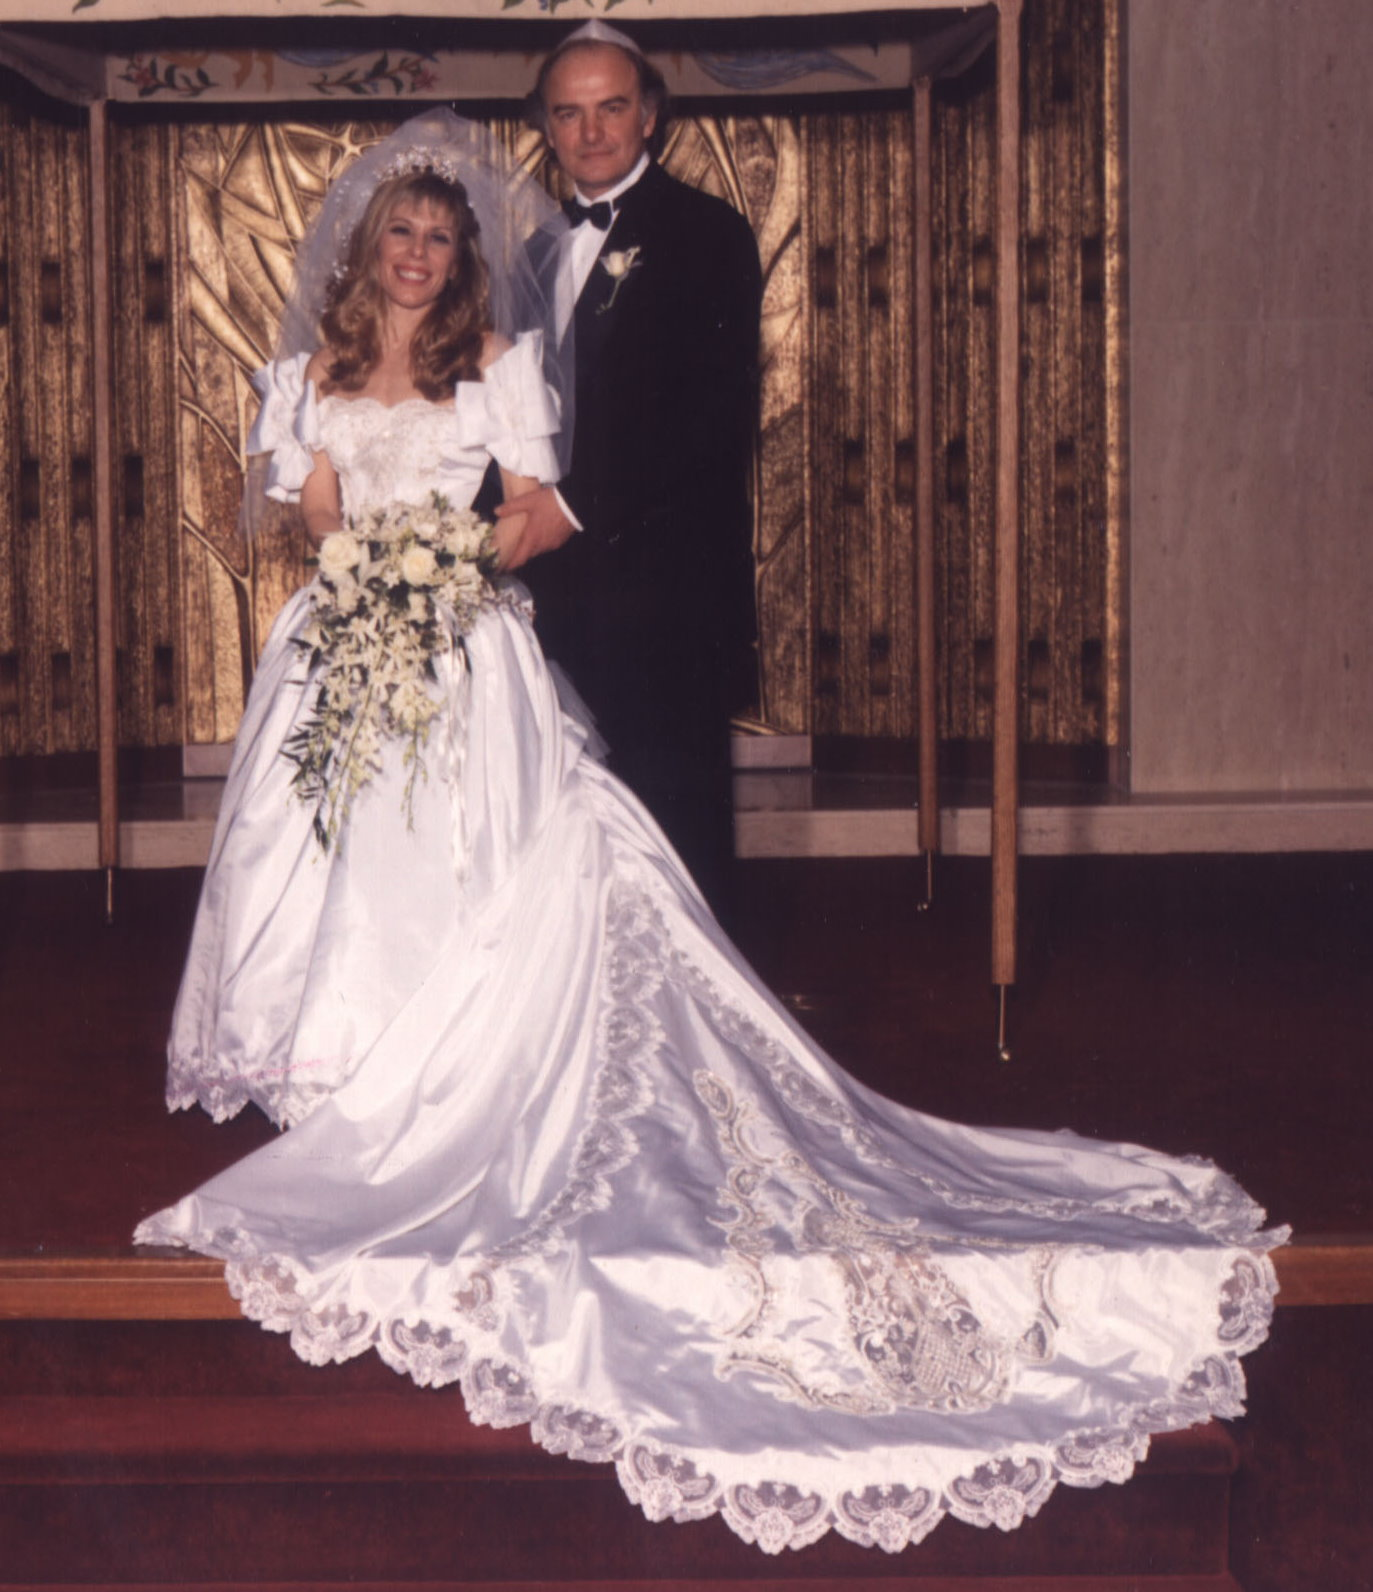 Dr. Max & Pr. Max get married! April 12, 1992